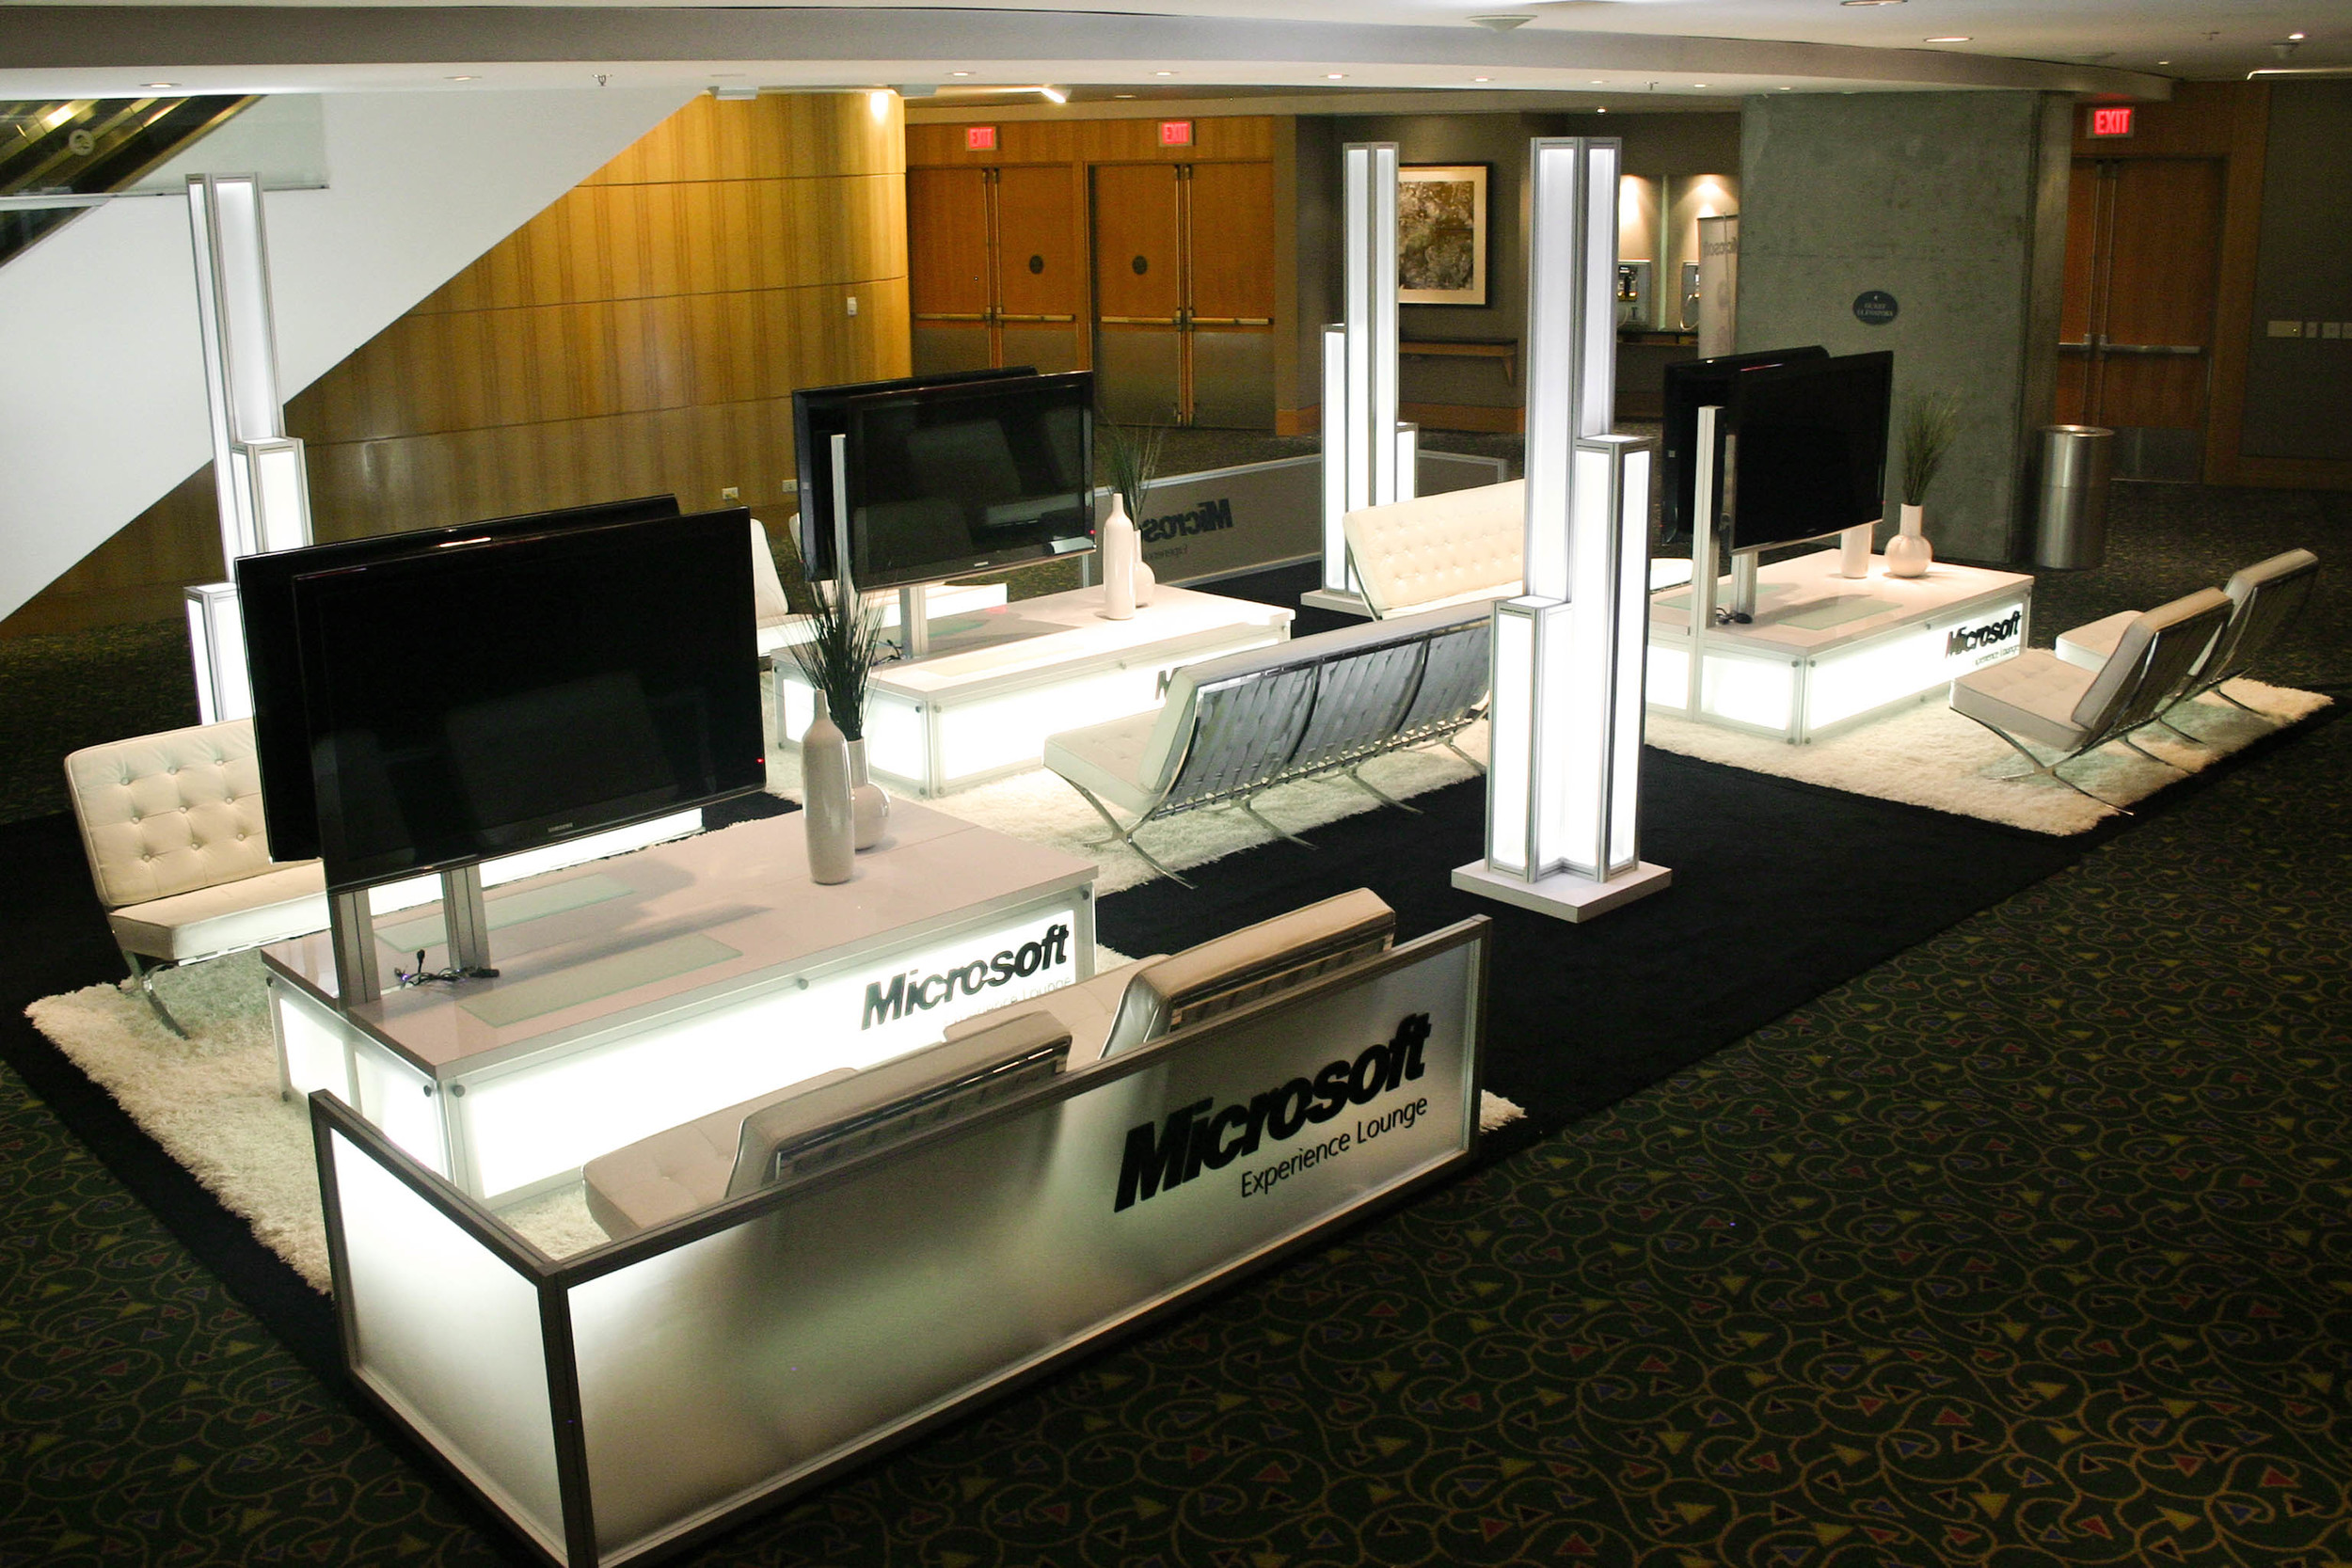 Built with modular Octanorm exhibit material, the Microsoft Lounge is scalable and flexible for any event or booth size